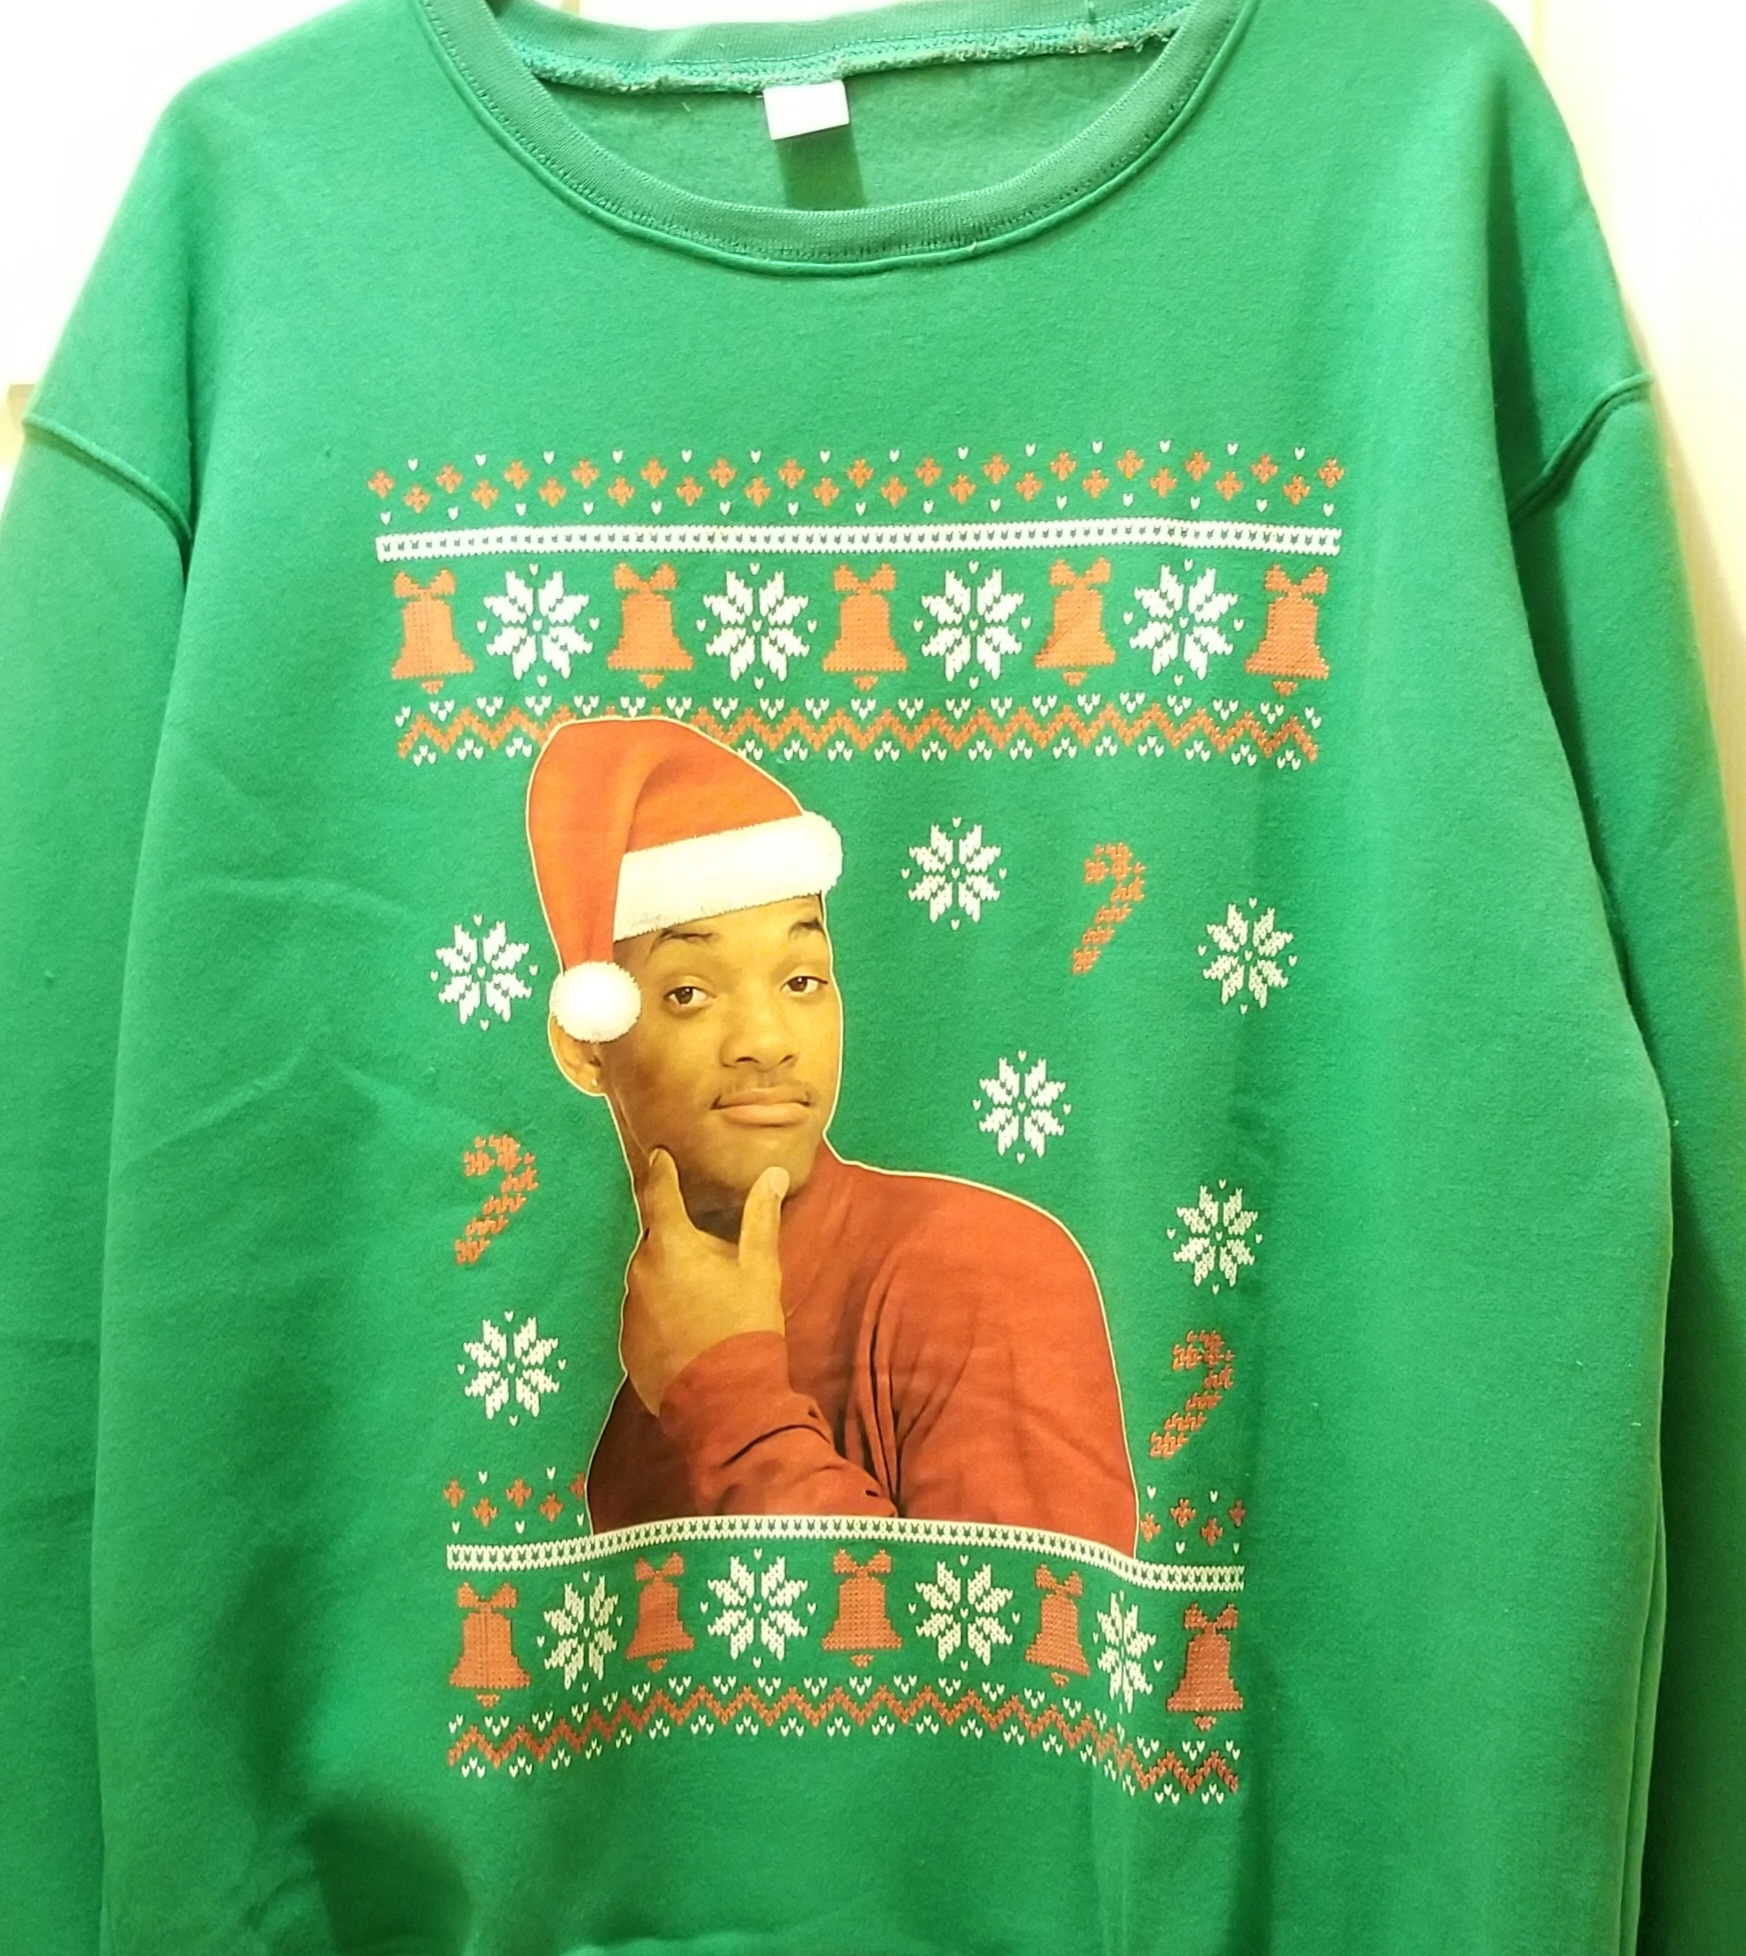 Will Smith Ugly Christmas Sweatshirt